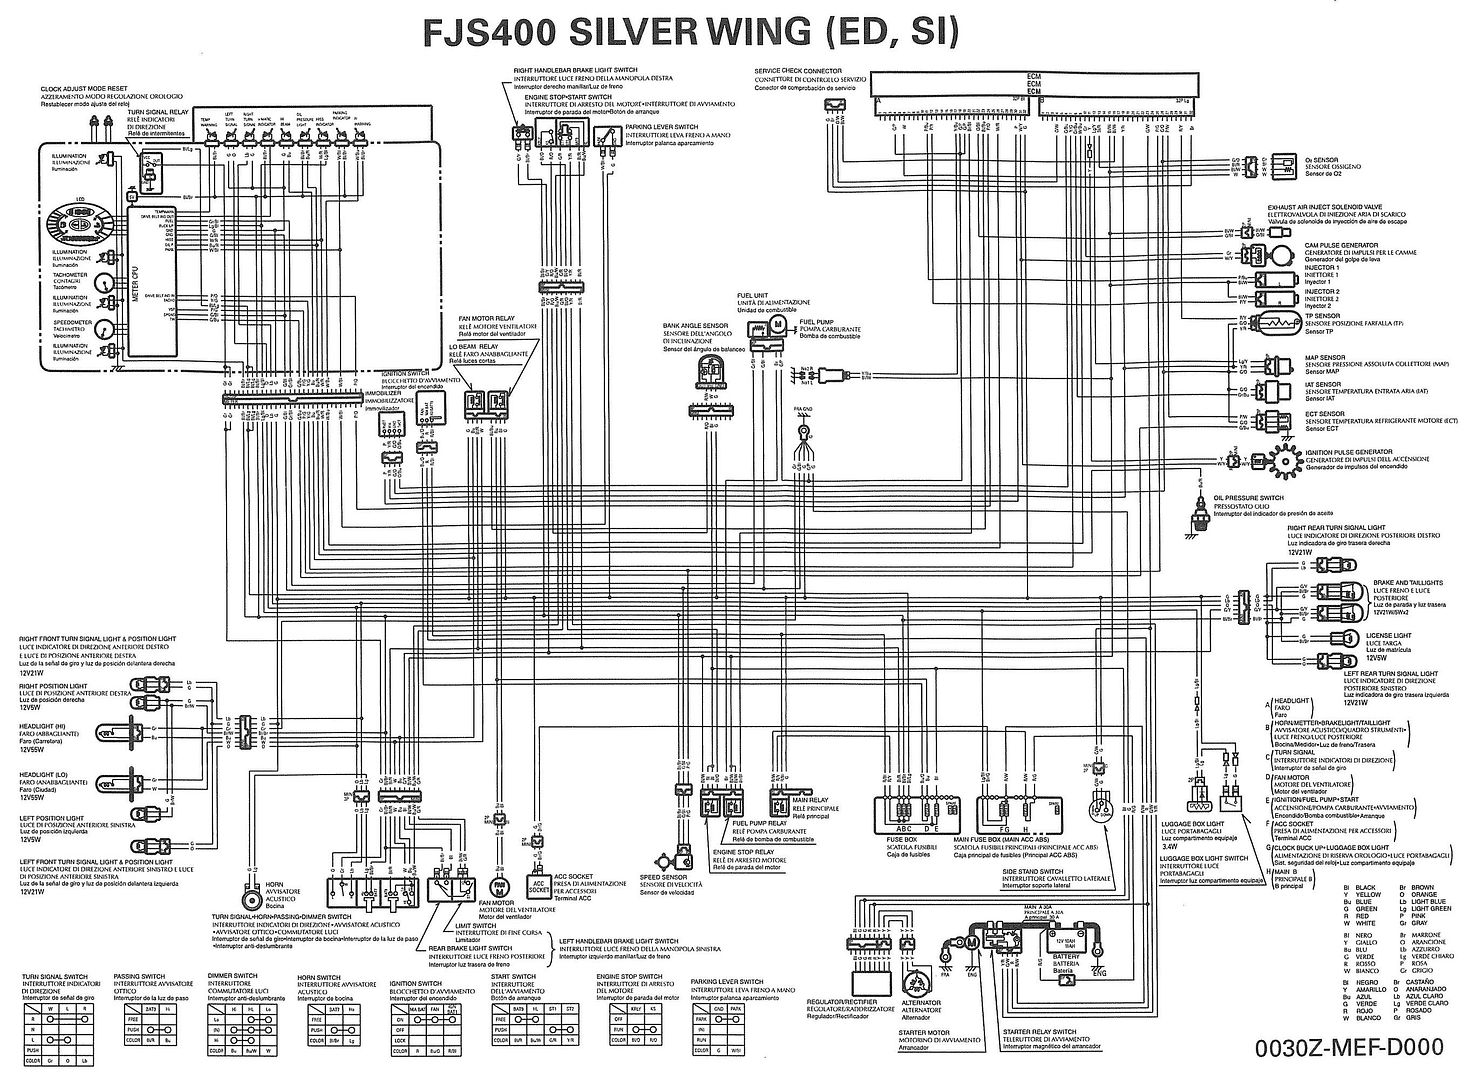 Wiring Diagram 2003 Honda Reflex Nss250/ A Under Seat